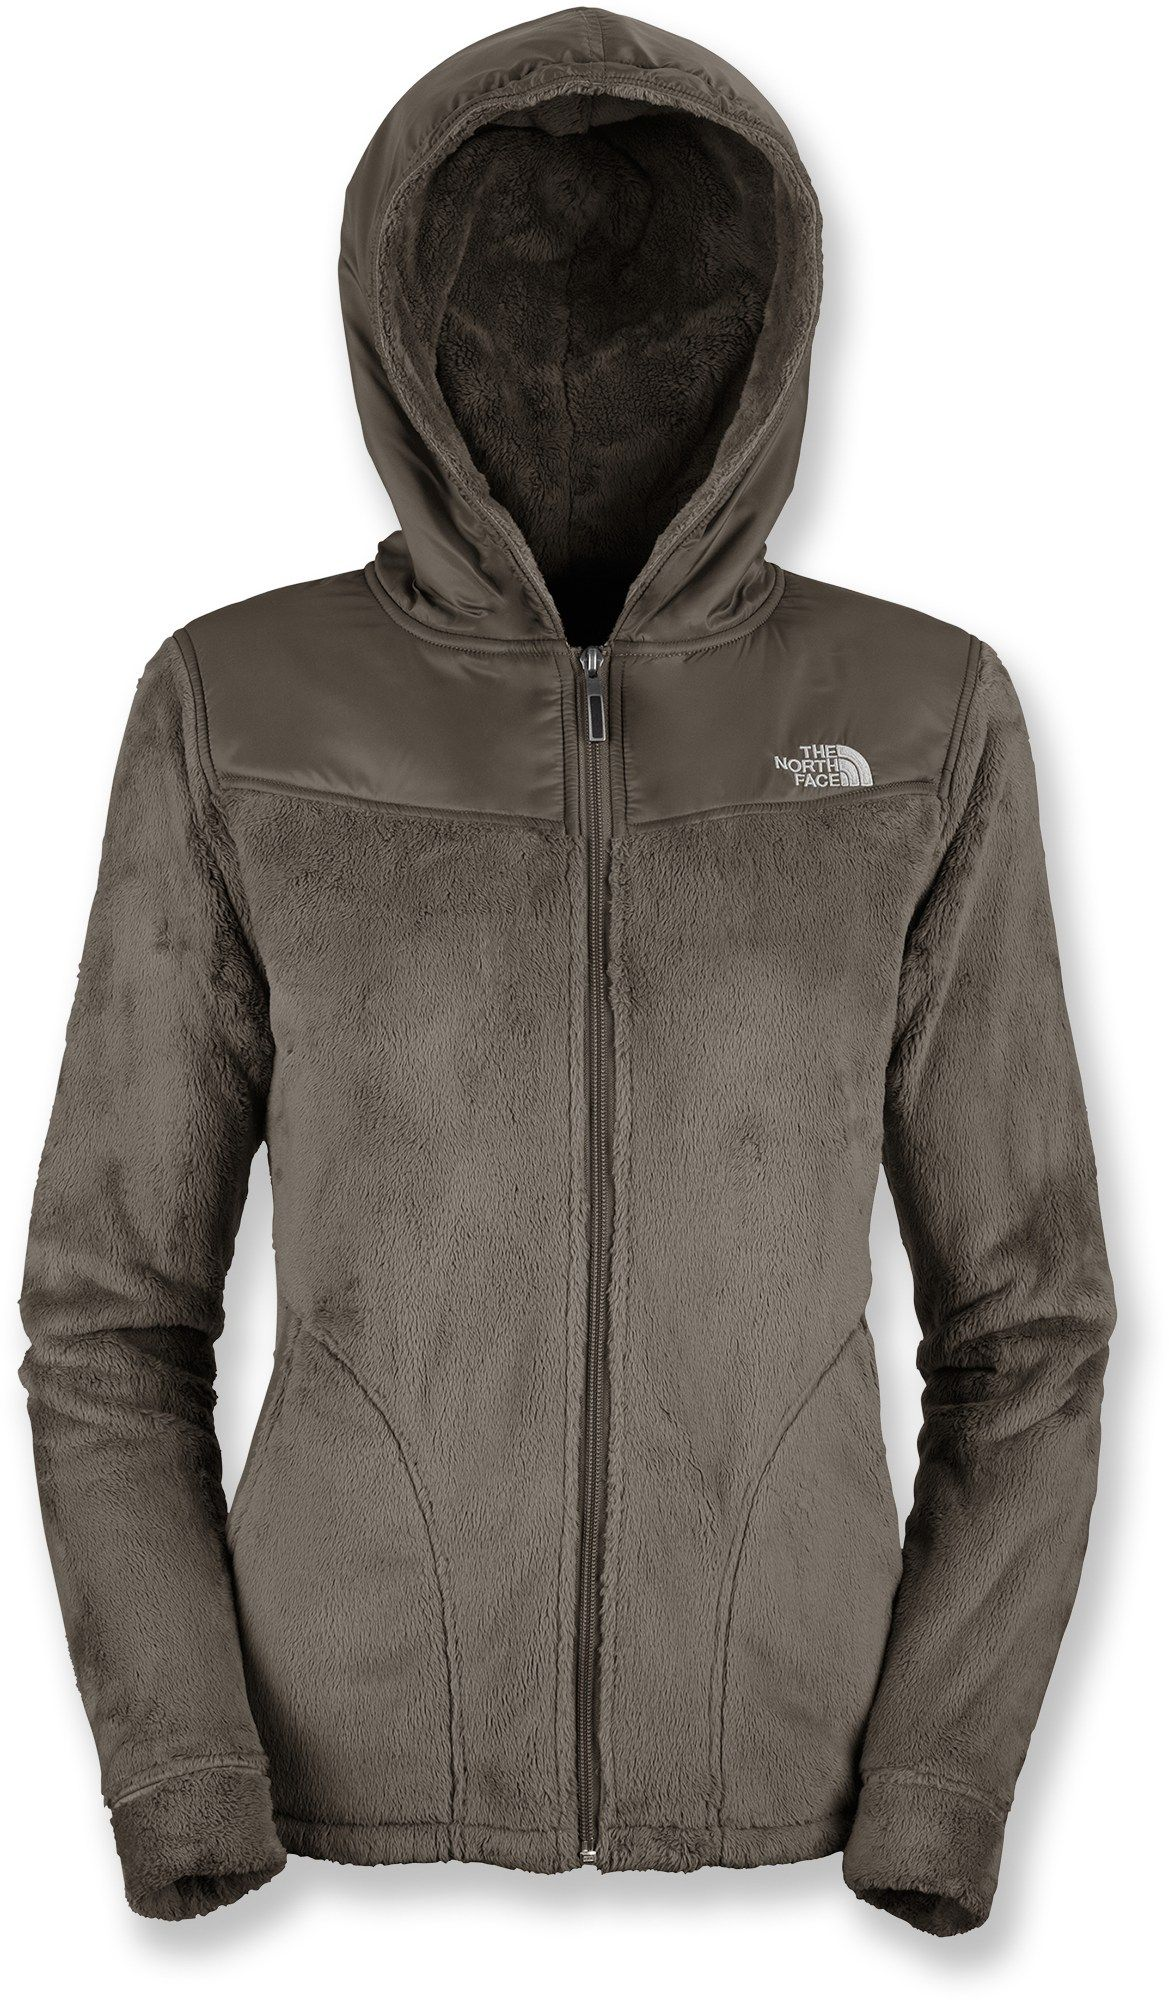 The North Face Oso Fleece Hoodie Women S 2013 Closeout Free Shipping At Rei Outlet Com Fleece Hoodie Women North Face Fleece Womens Hoodies Womens [ 2000 x 1169 Pixel ]